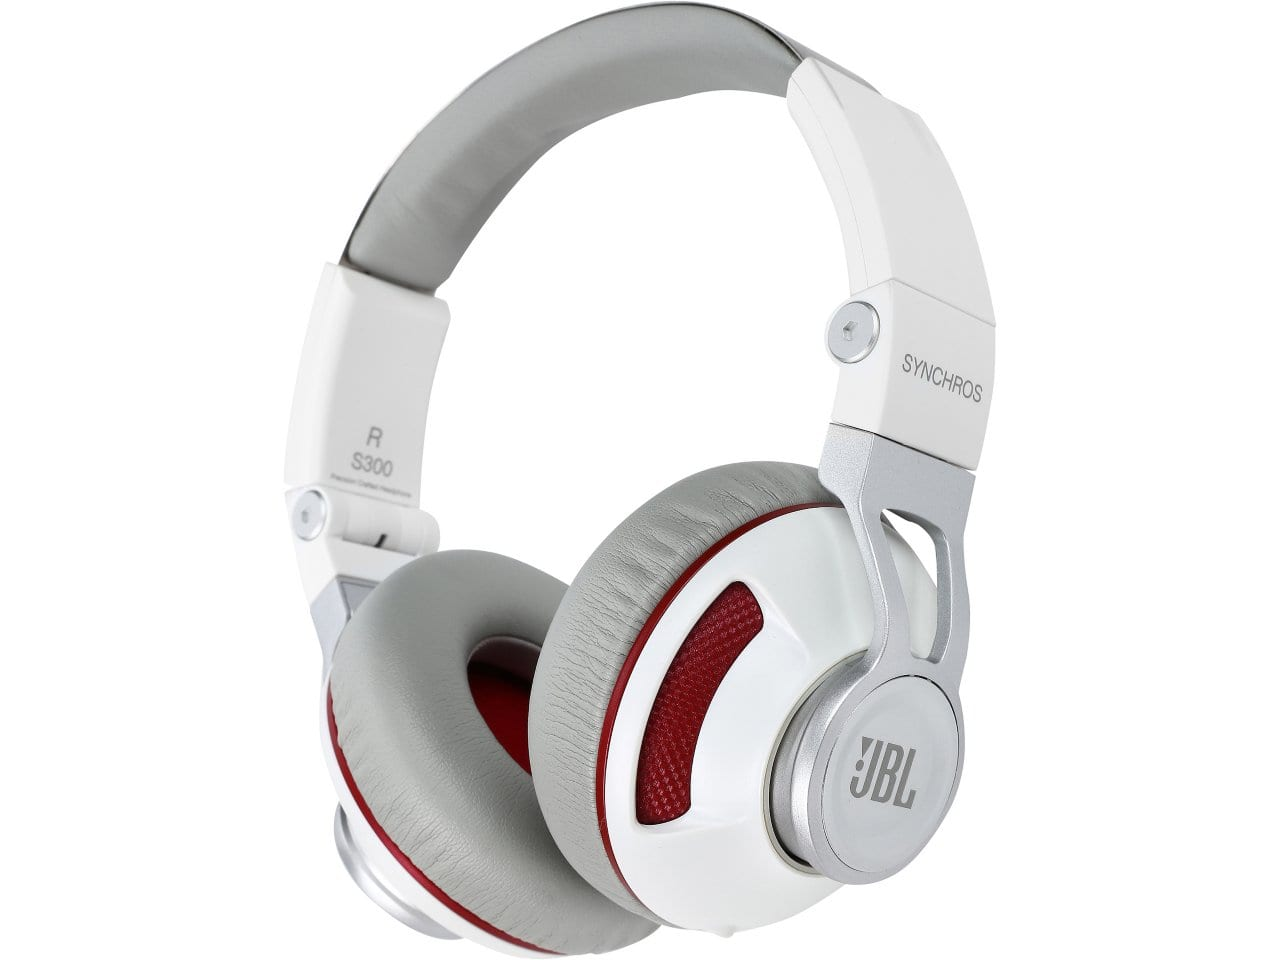 JBL Synchros S300 Premium On-Ear Headphones with Built-In iOS Remote & Microphone (White & Red) for $39.99 + Free Shipping @ Newegg.com